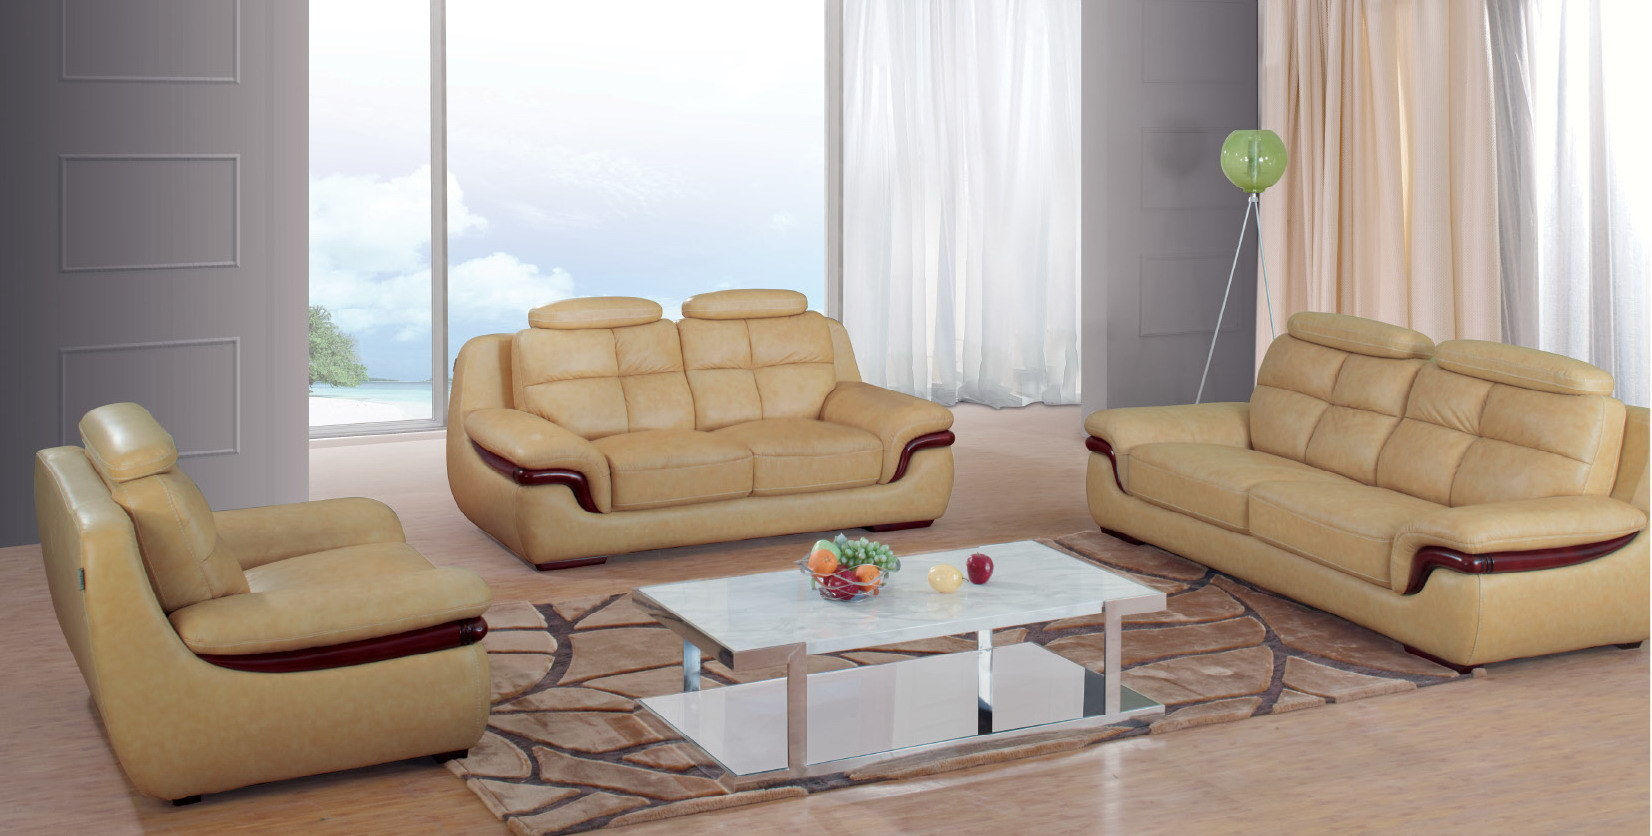 Sofa bed in Living Room Furniture - Compare Prices, Read Reviews